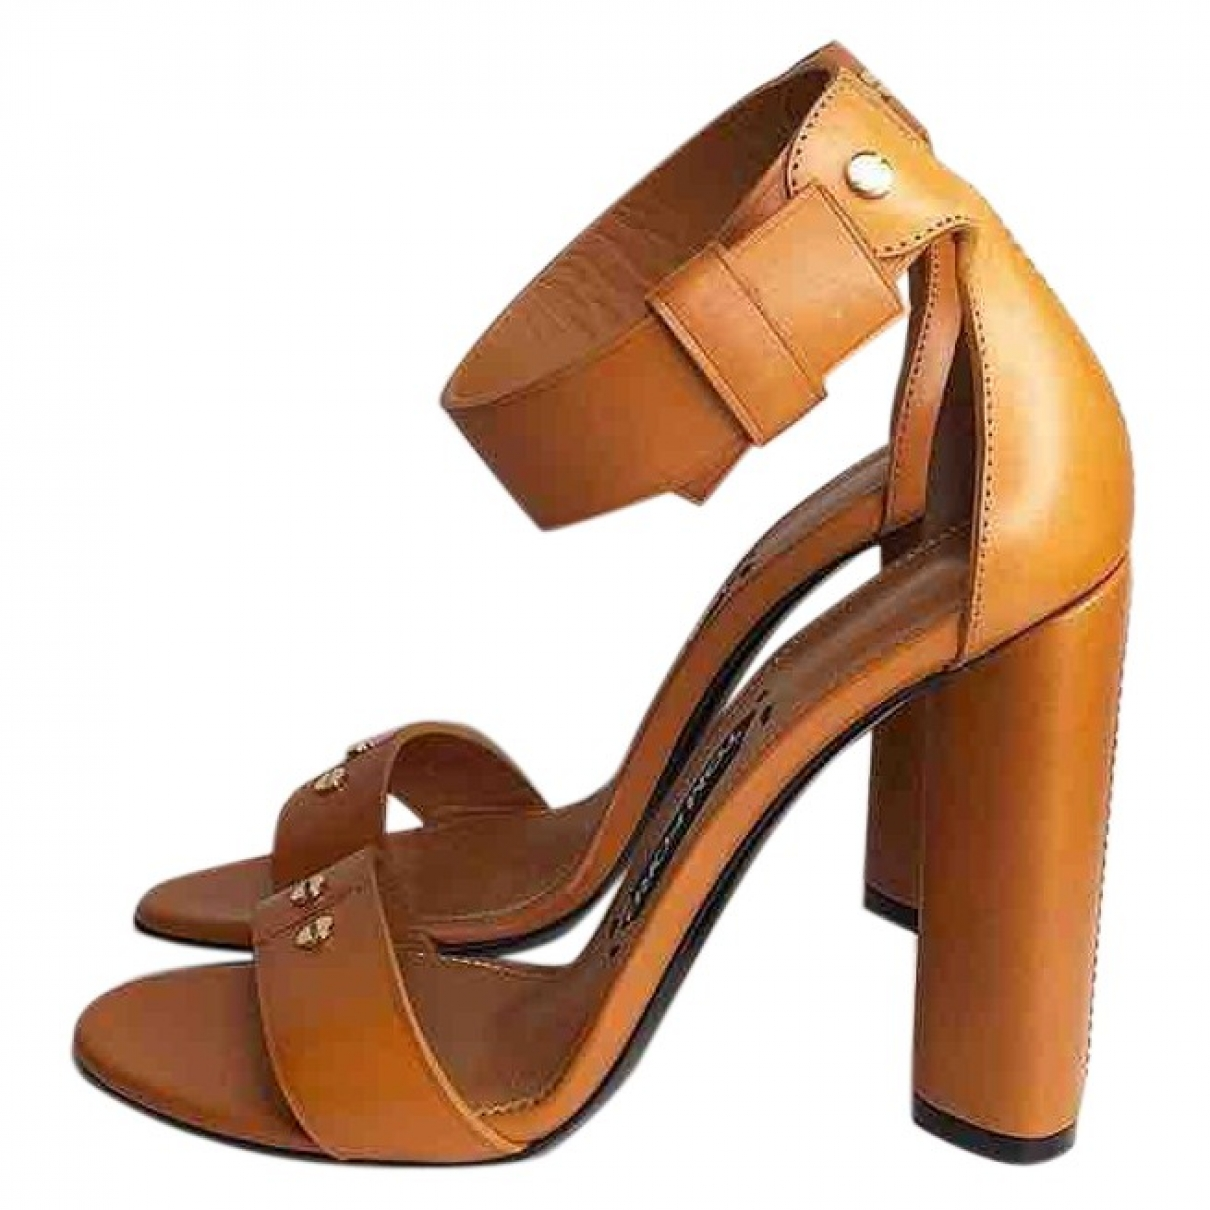 Tom Ford \N Camel Leather Sandals for Women 38 EU